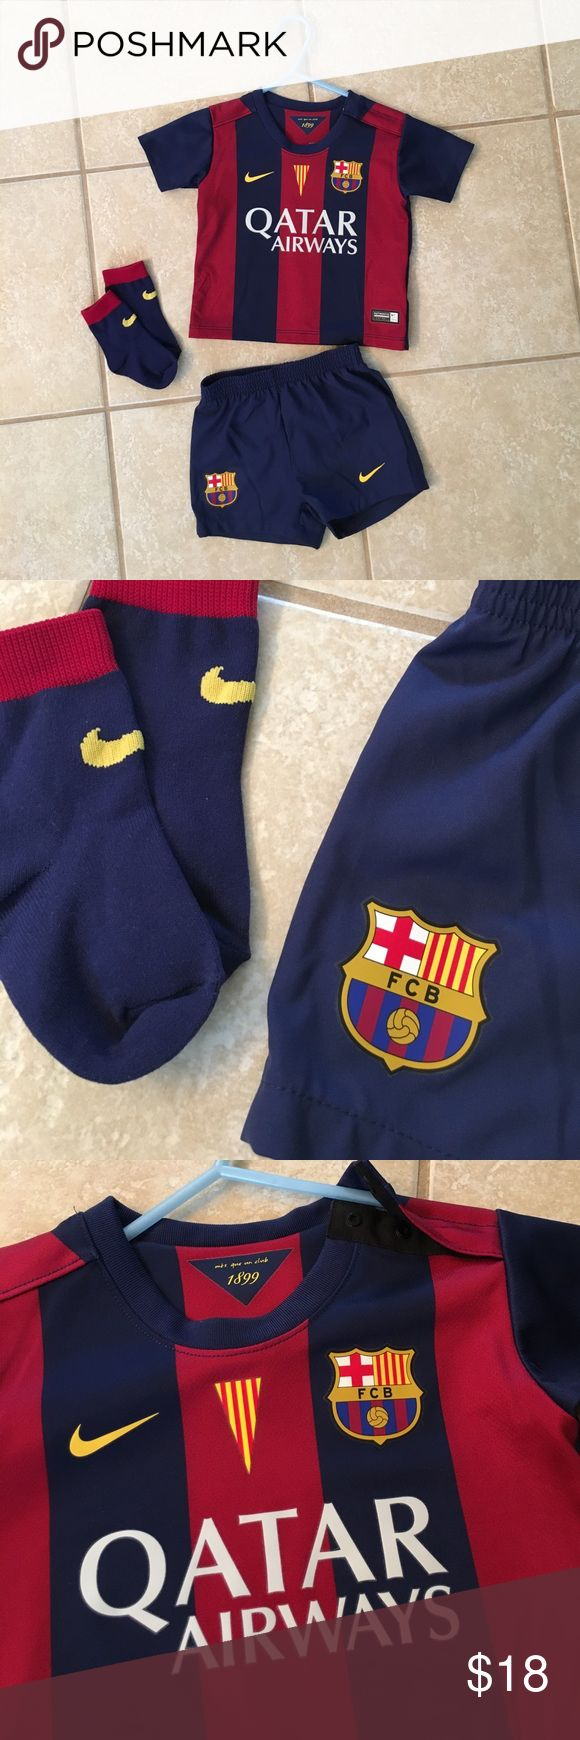 Authentic Nike FC Barcelona Uniform (Baby/Infant) Show off your soccer club pride! ⚽️ 🇪🇸 Set includes Nike Infant FC Barcelona jersey, shorts, and ribbed socks. Perfect condition other than a bit wrinkly. 100% Polyester and machine wash. Shoulder snaps for easy manueuver over baby's head. Very lightweight. Size 3-6 months Nike Matching Sets